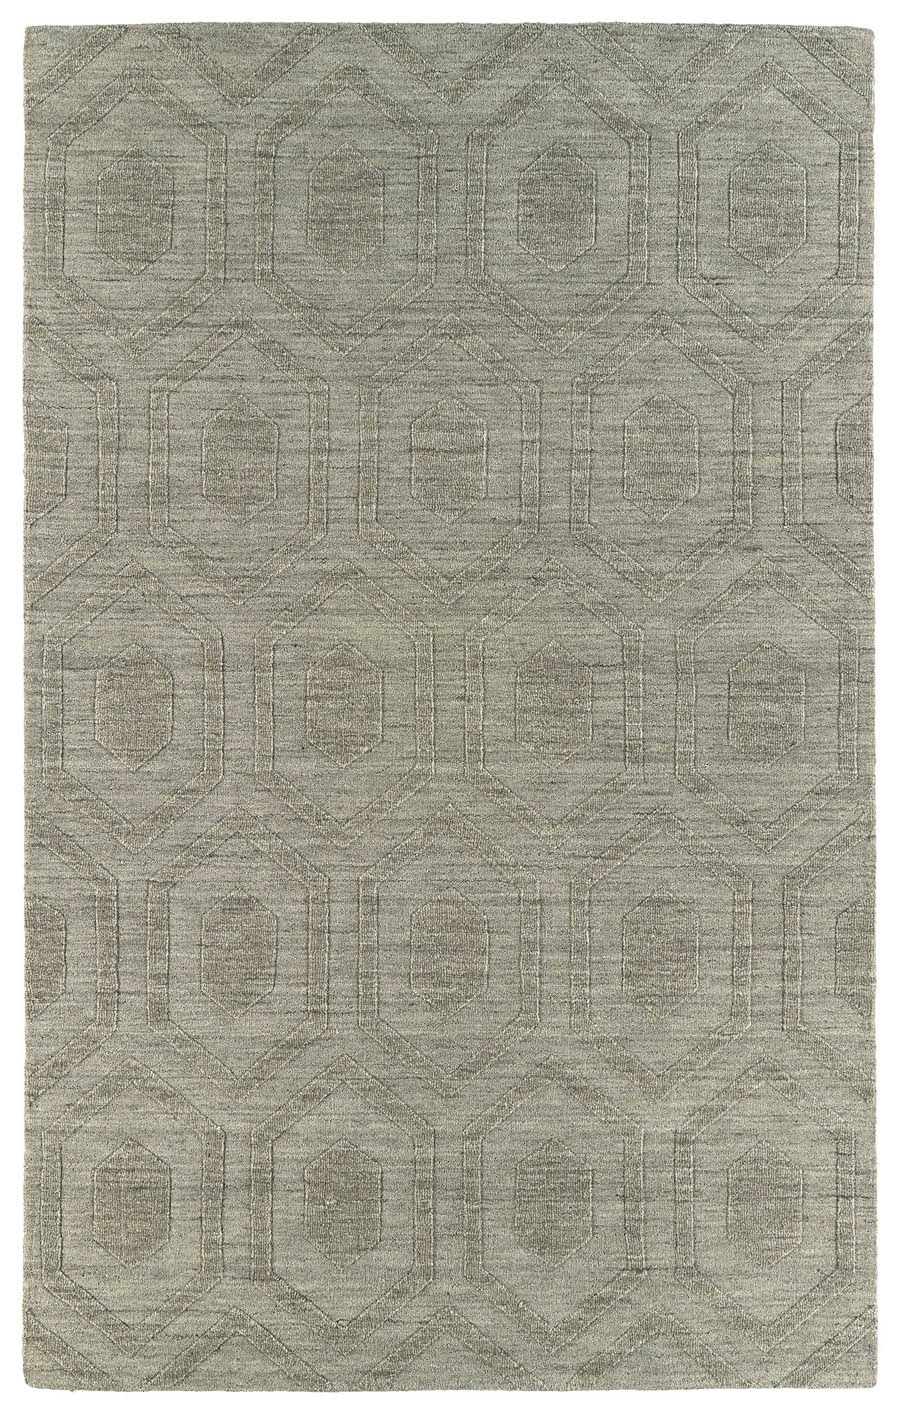 Kaleen Imprints Modern IPM01 82 Light Brown Rug